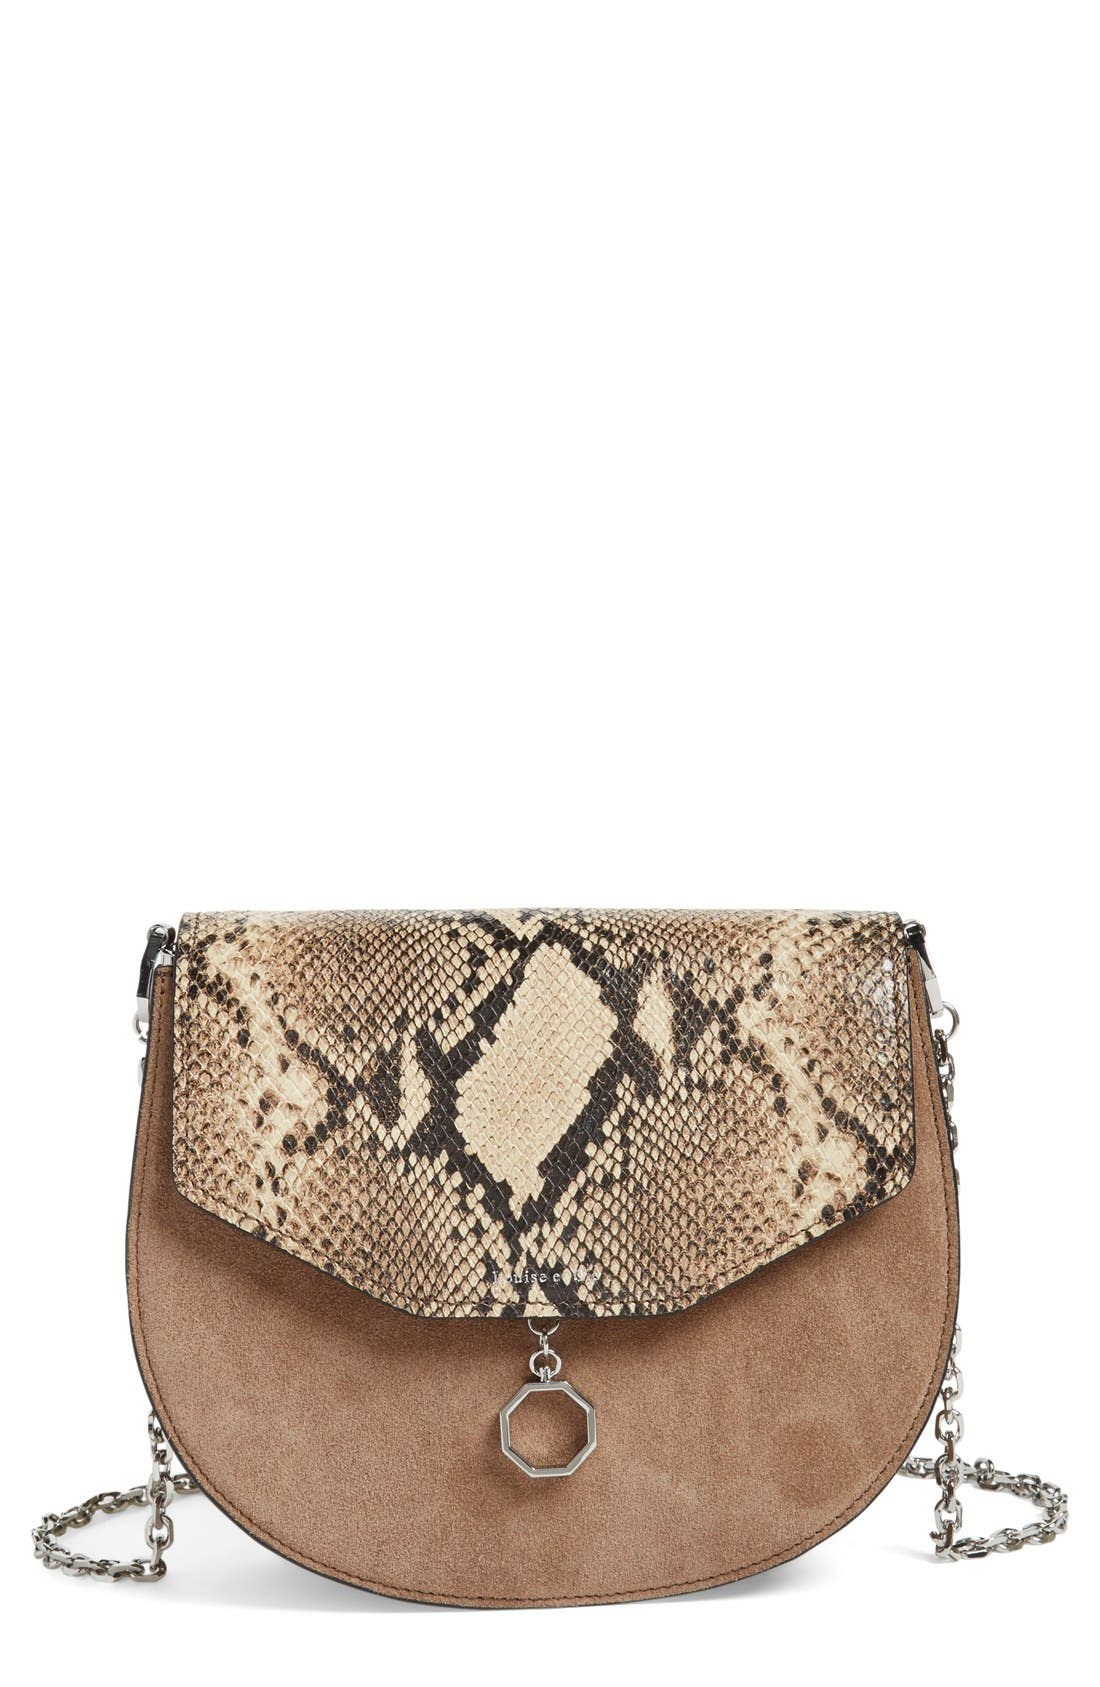 Alternate Image 1 Selected - Louise et Cie 'Jael' Suede & Leather Shoulder Bag